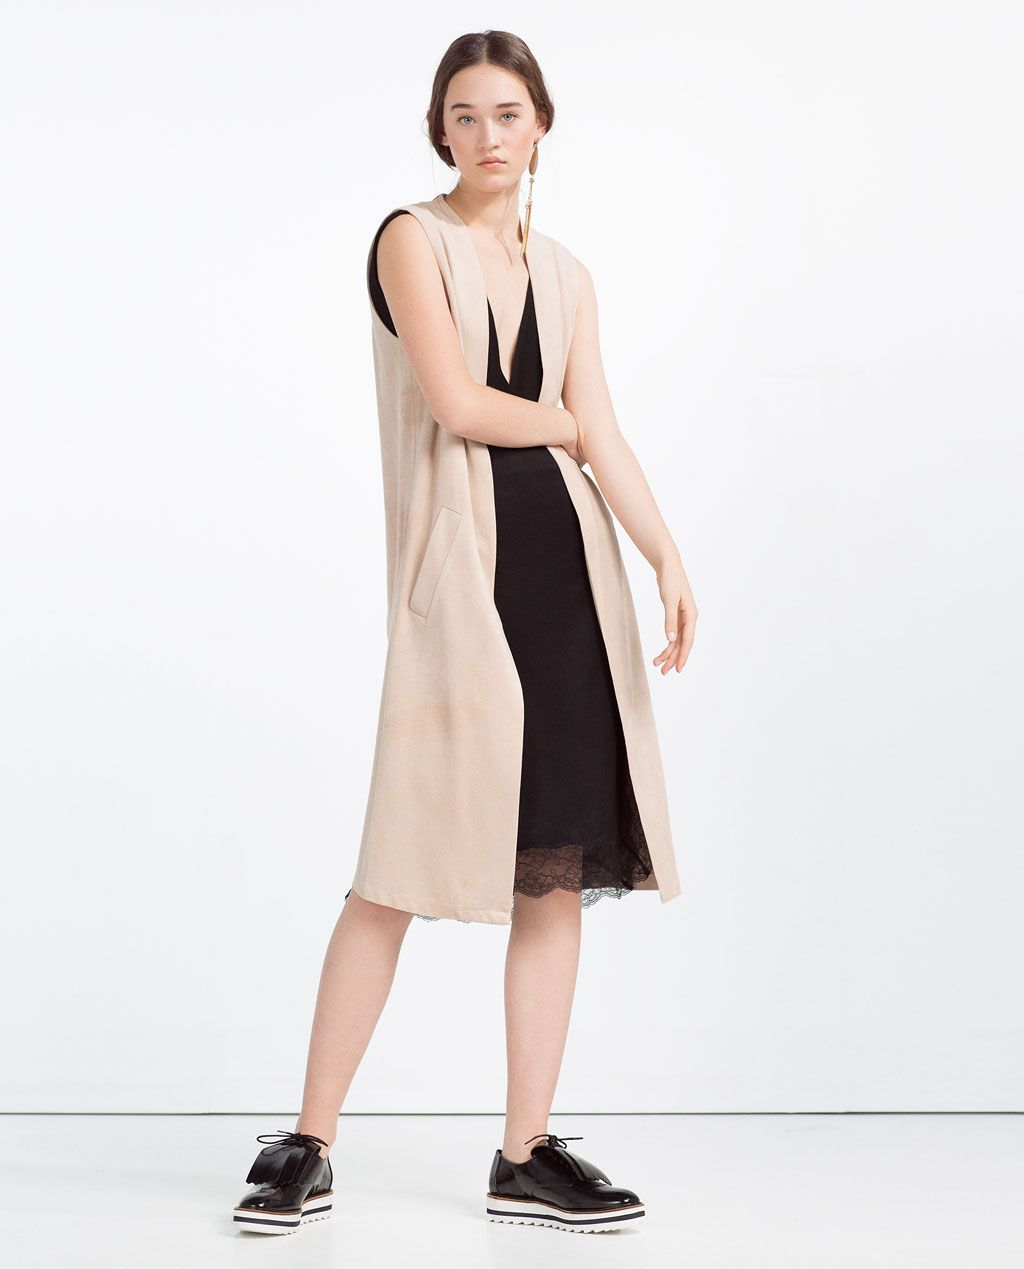 ZARA - COLLECTION SS16 - LONG WAISTCOAT WITH BACK OPENING